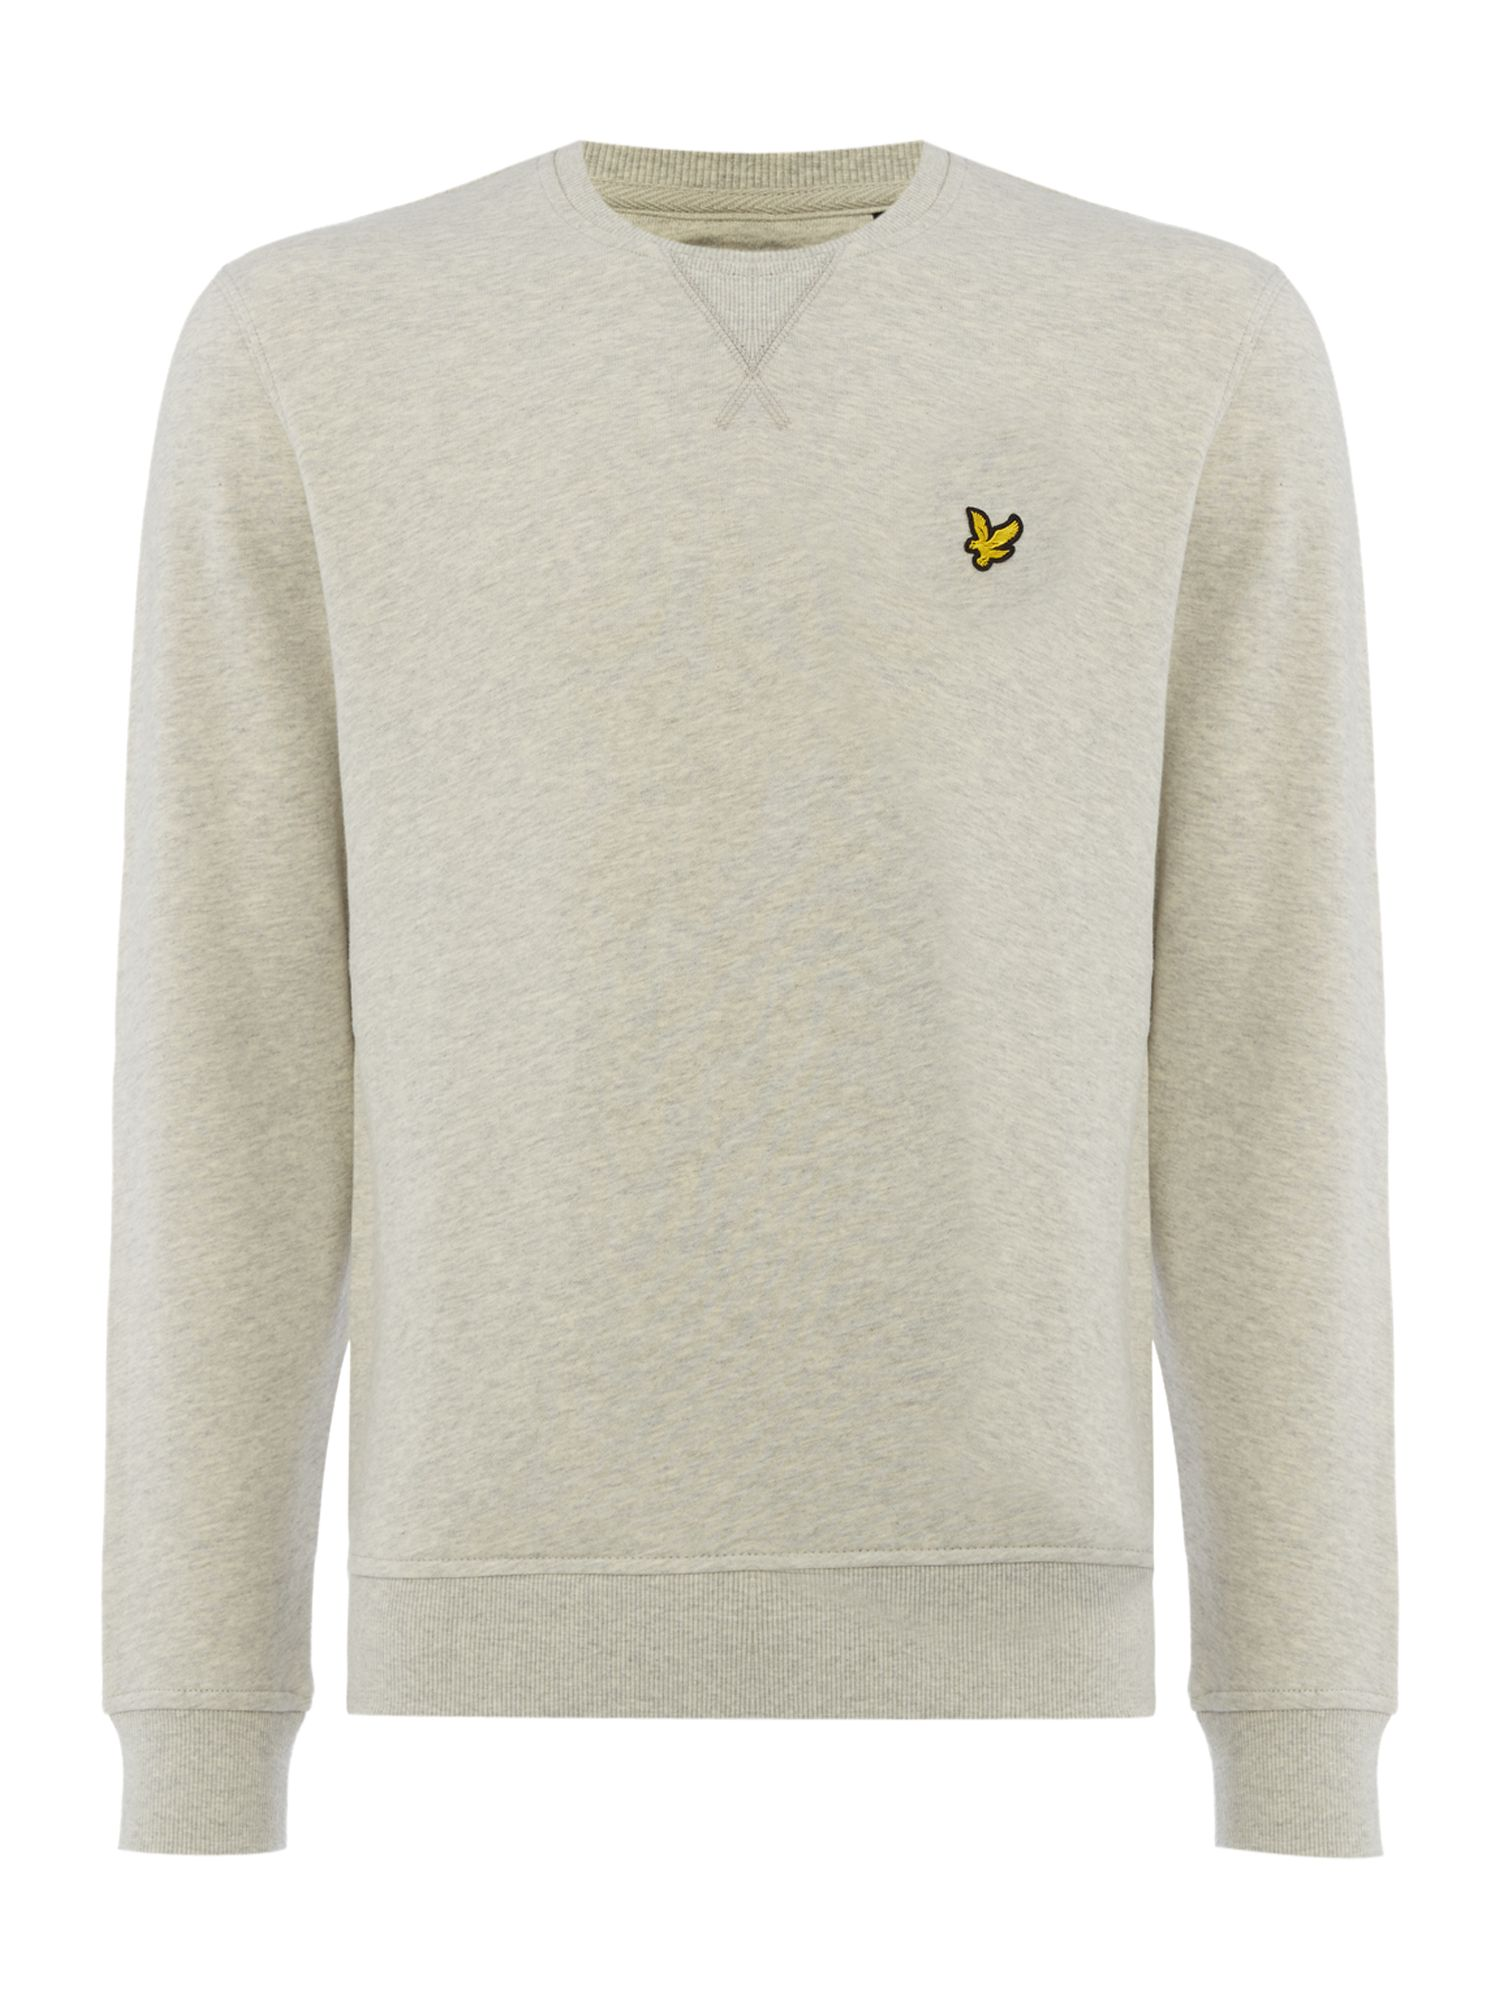 Men's Lyle and Scott Crew Neck Sweatshirt, Light Grey Marl